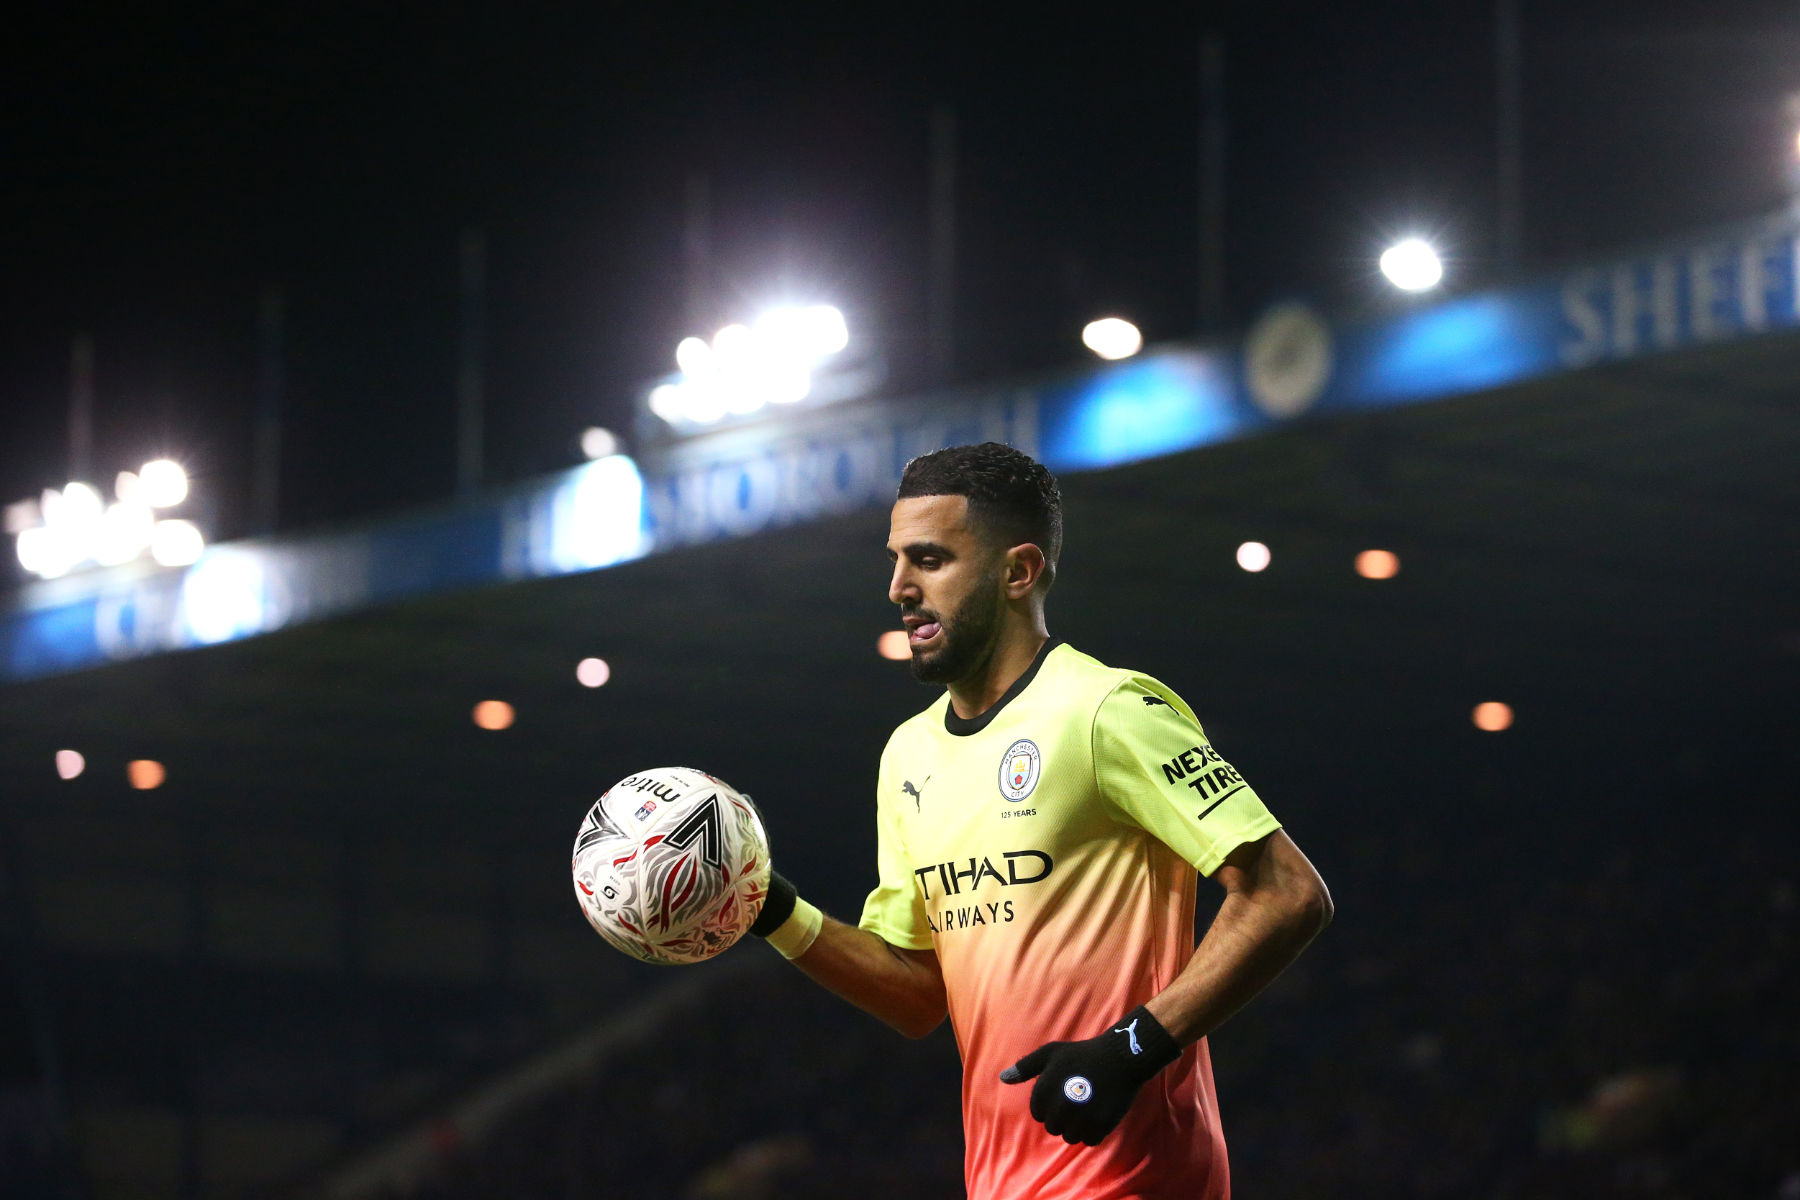 Video: 'It's Special Because I'm From Paris' - Riyad Mahrez Shares Thoughts  on the PSG-Manchester City Matchup - PSG Talk